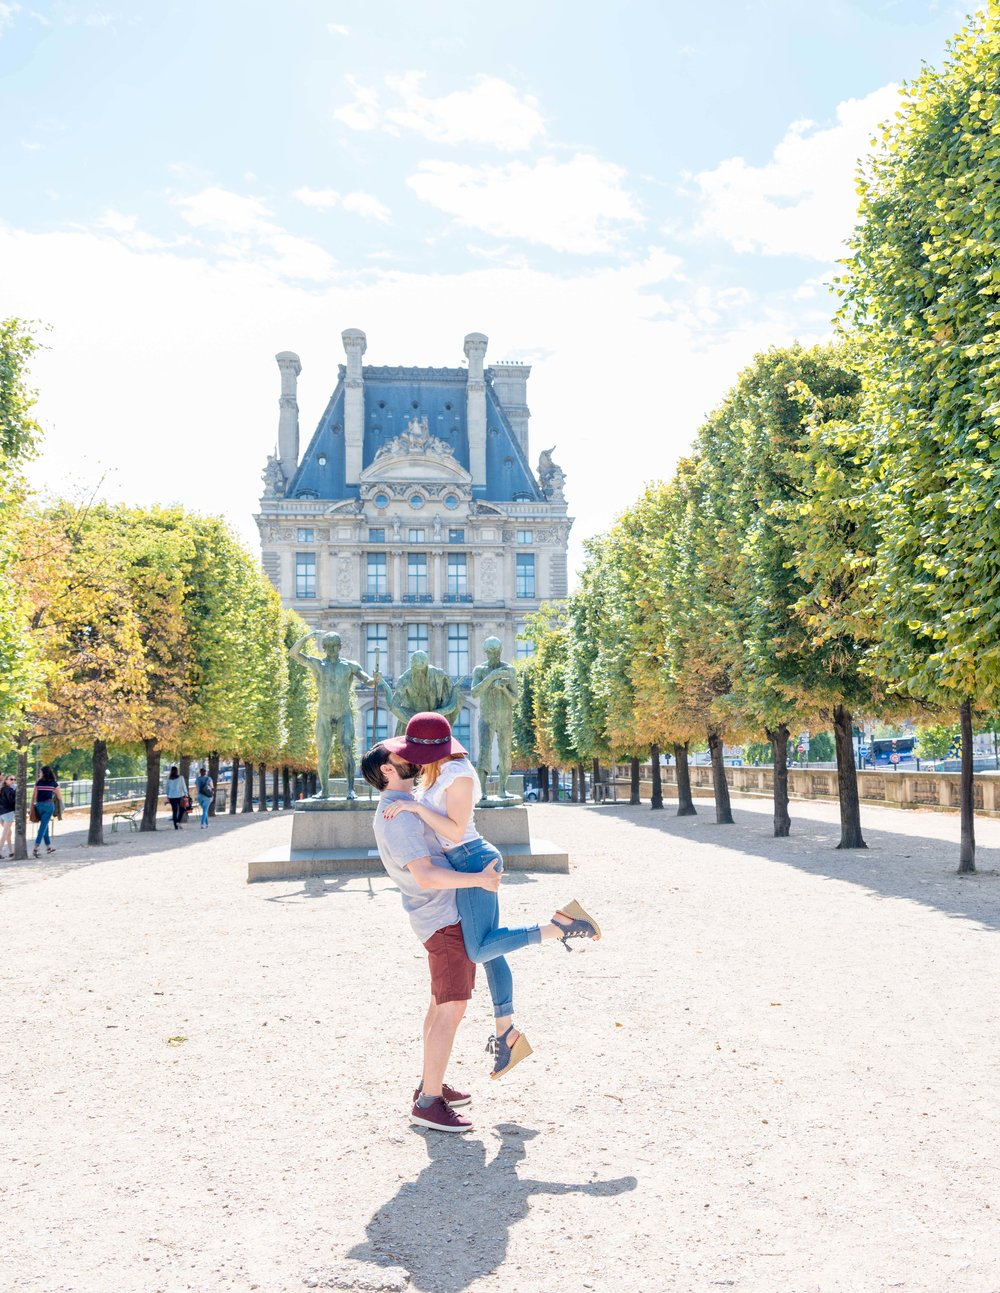 engaged couple in love at tuileries gardens in paris